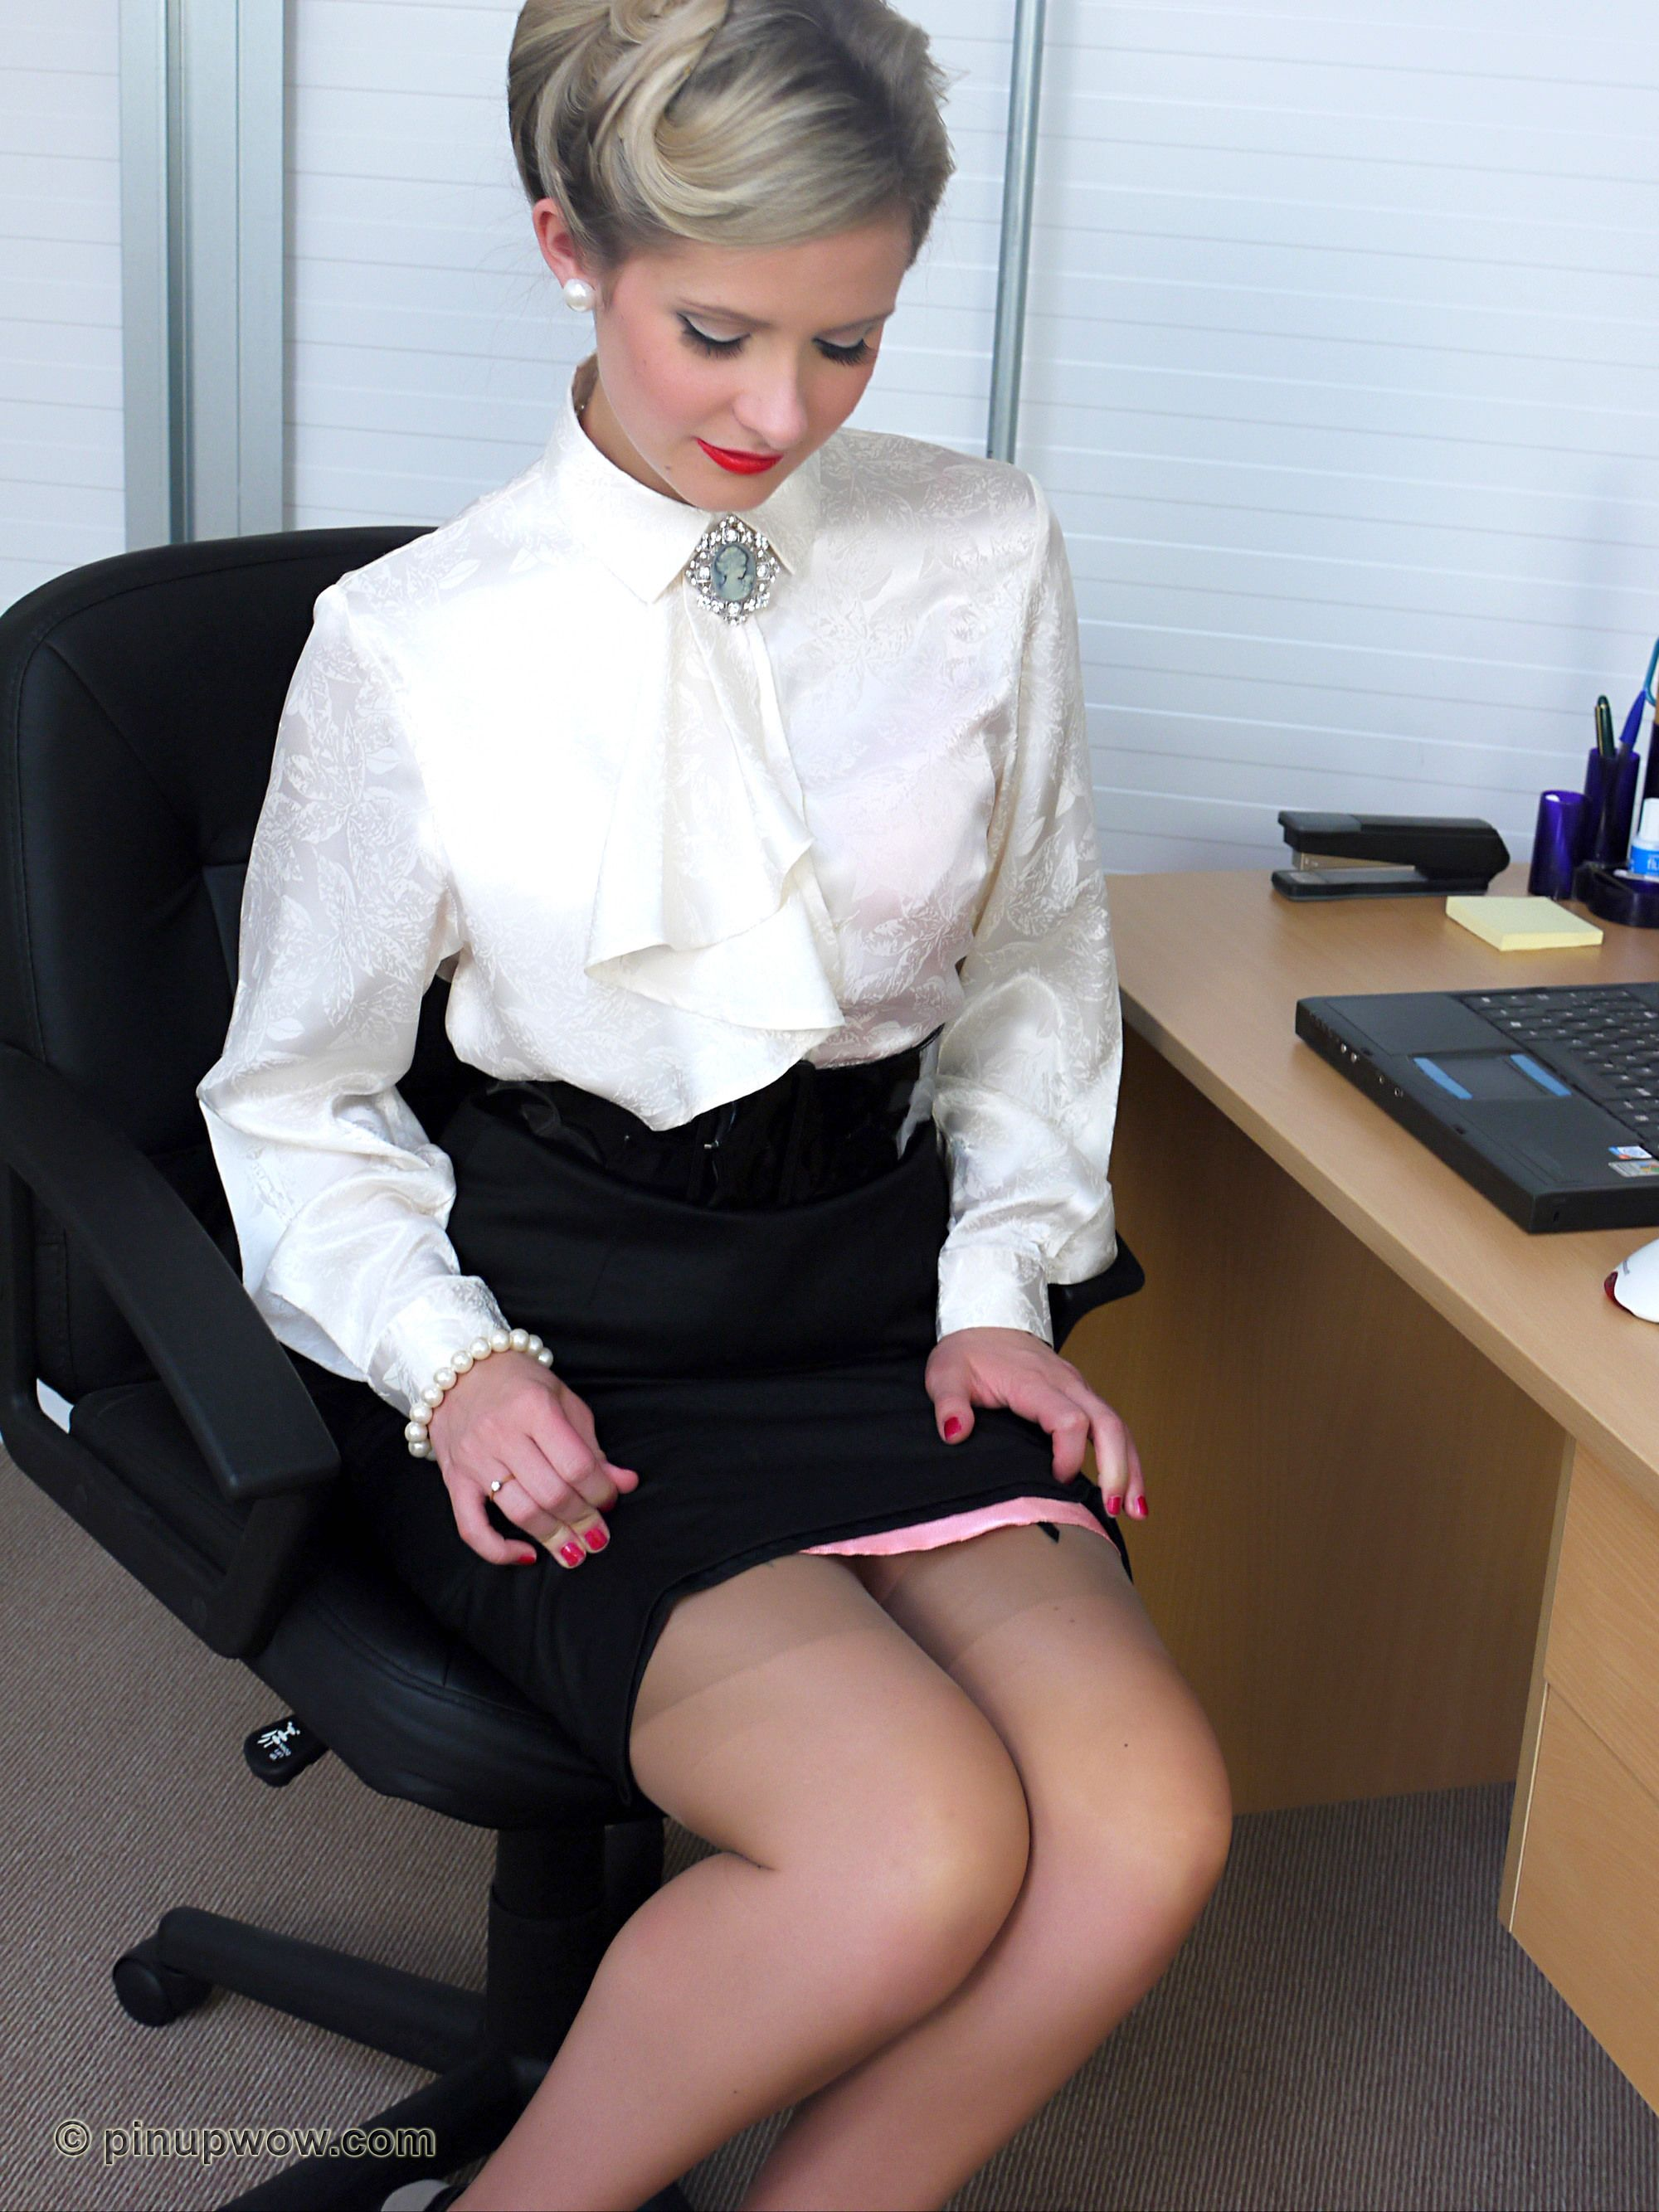 theme pretty hot chick shyla jenning wanting a huge cock have faced it